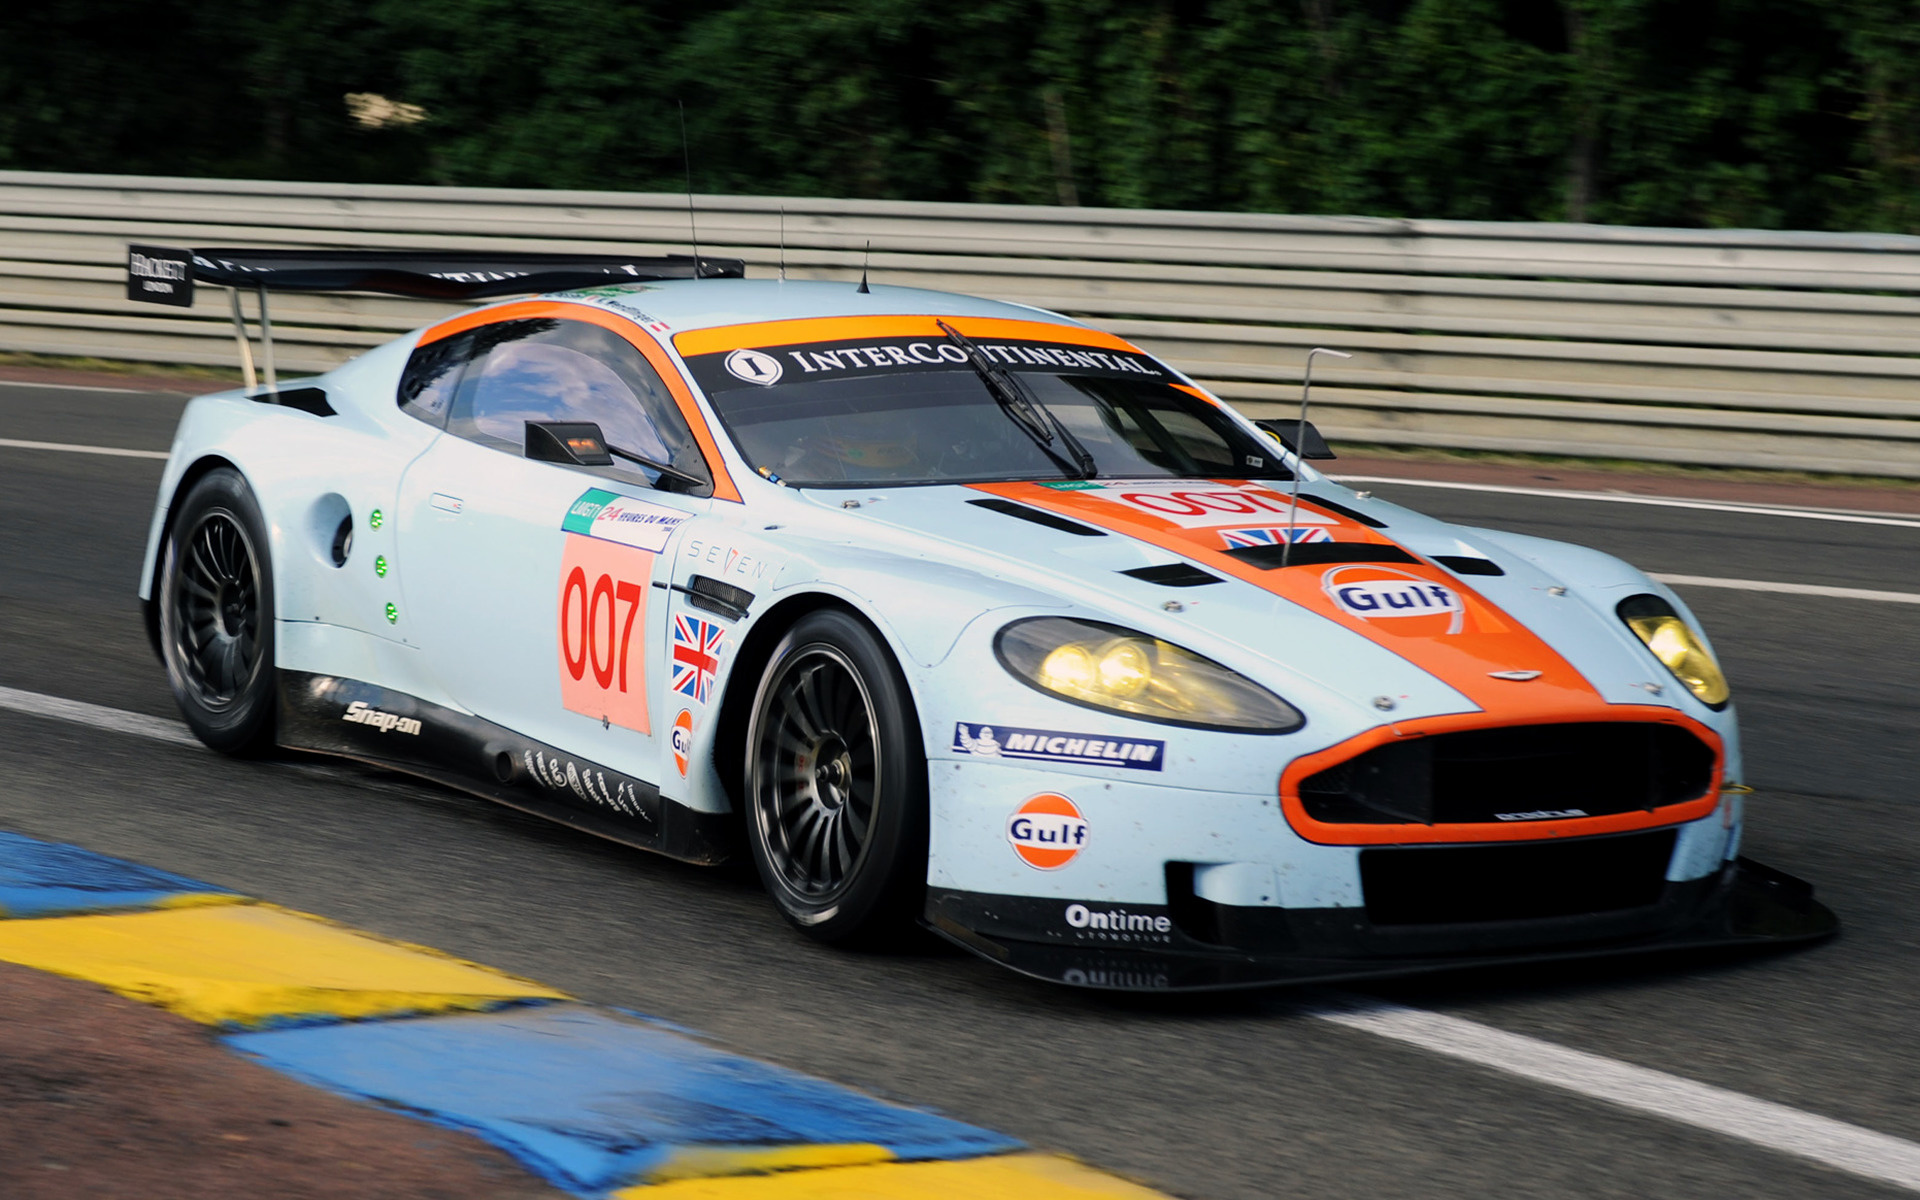 Aston Martin Dbr Gulf Oil Livery Car Wallpaper